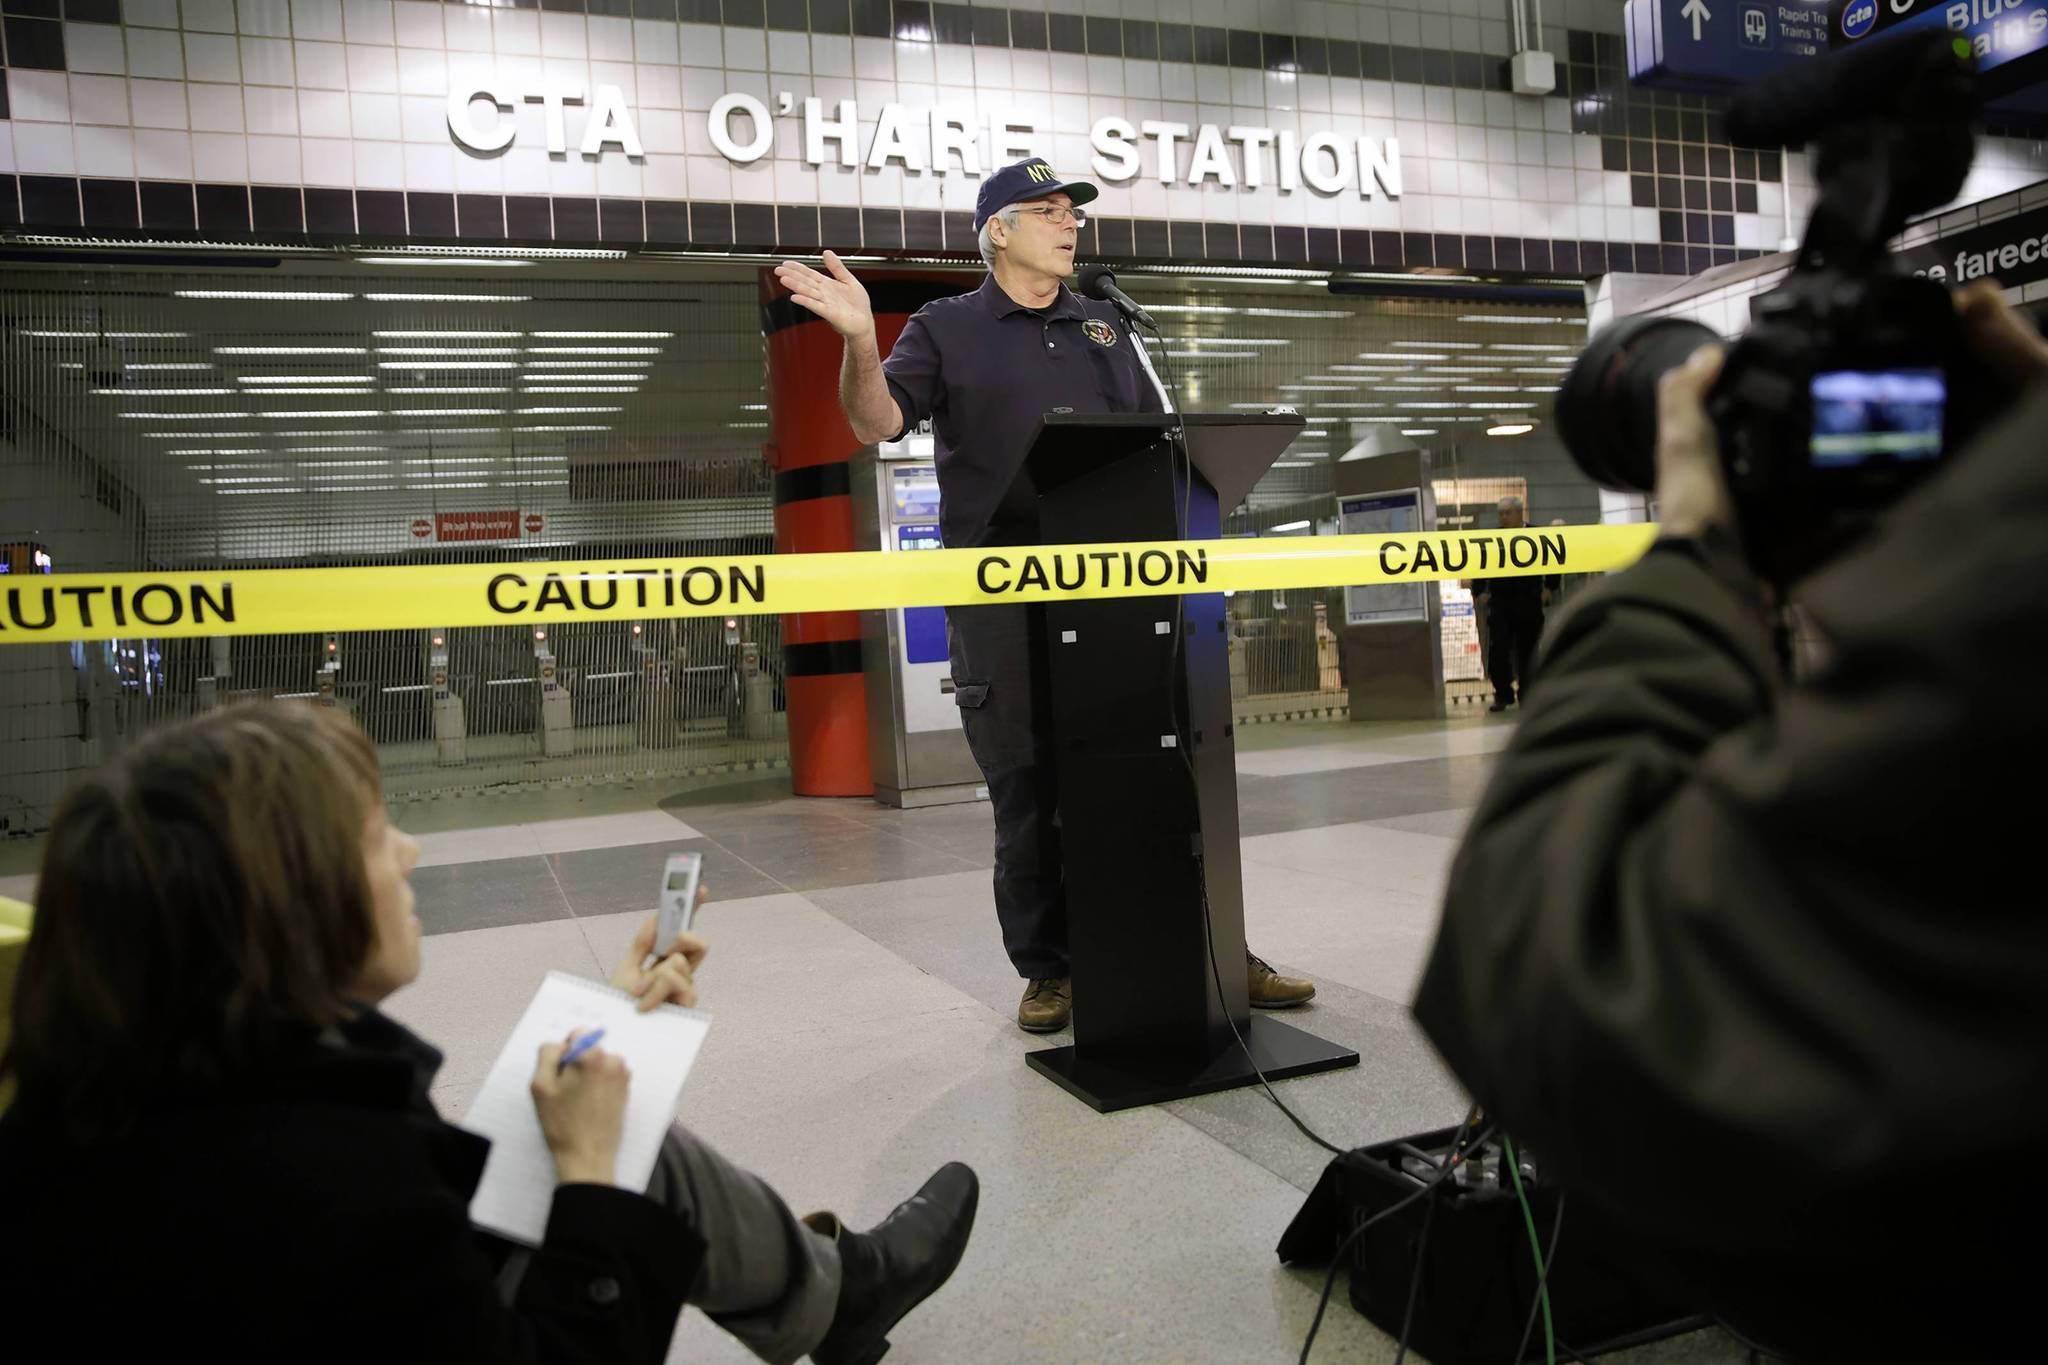 NTSB Investigator-in-Charge Ted Turpin updates reporters at the O'Hare CTA Blue Line Station on the train derailment.